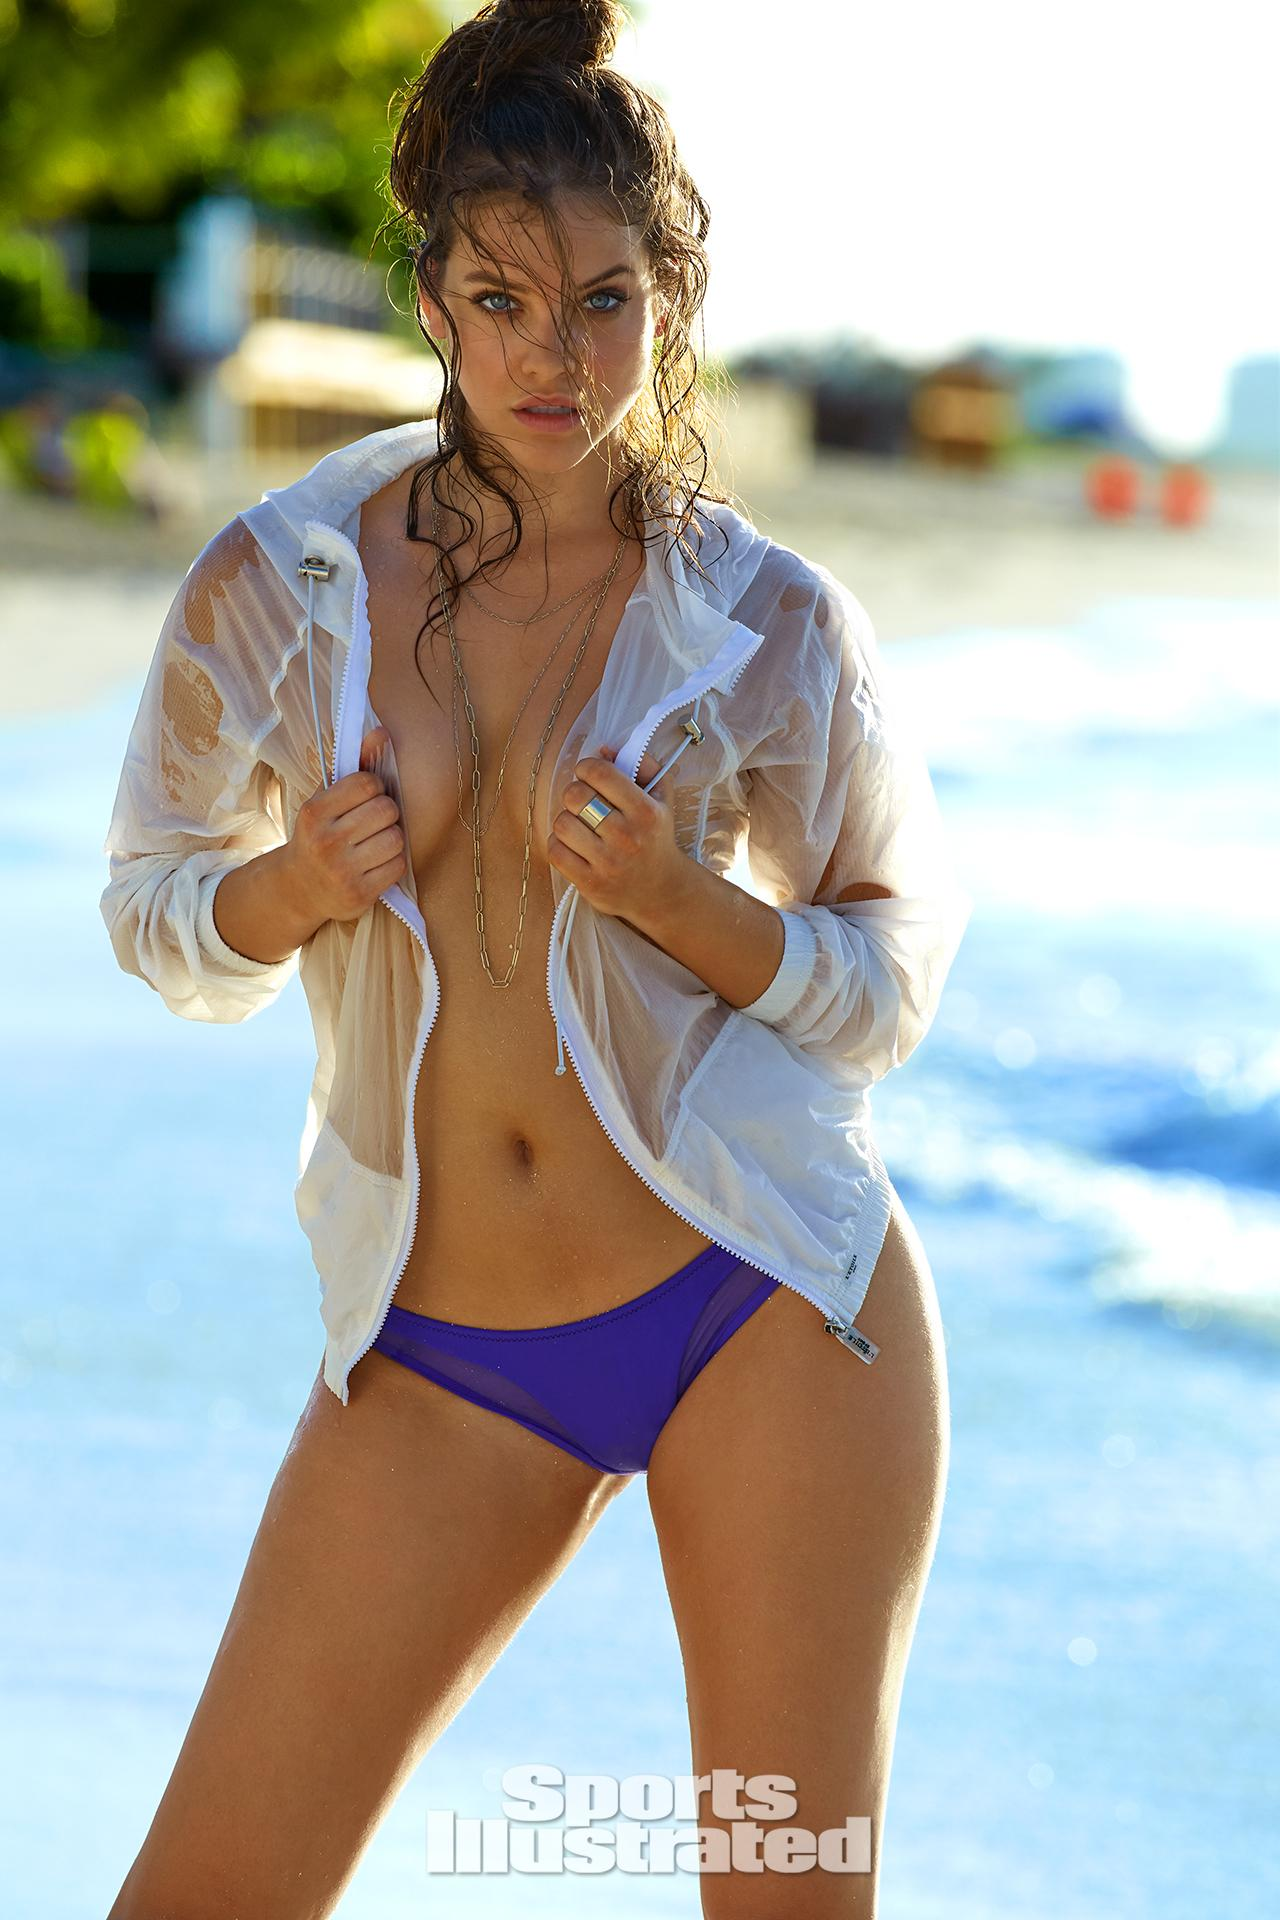 Barbara Palvin was photographed by James Macari in Turks & Caicos. Jacket by L'Etoile Sport. Swimsuit by Iztali Swim.